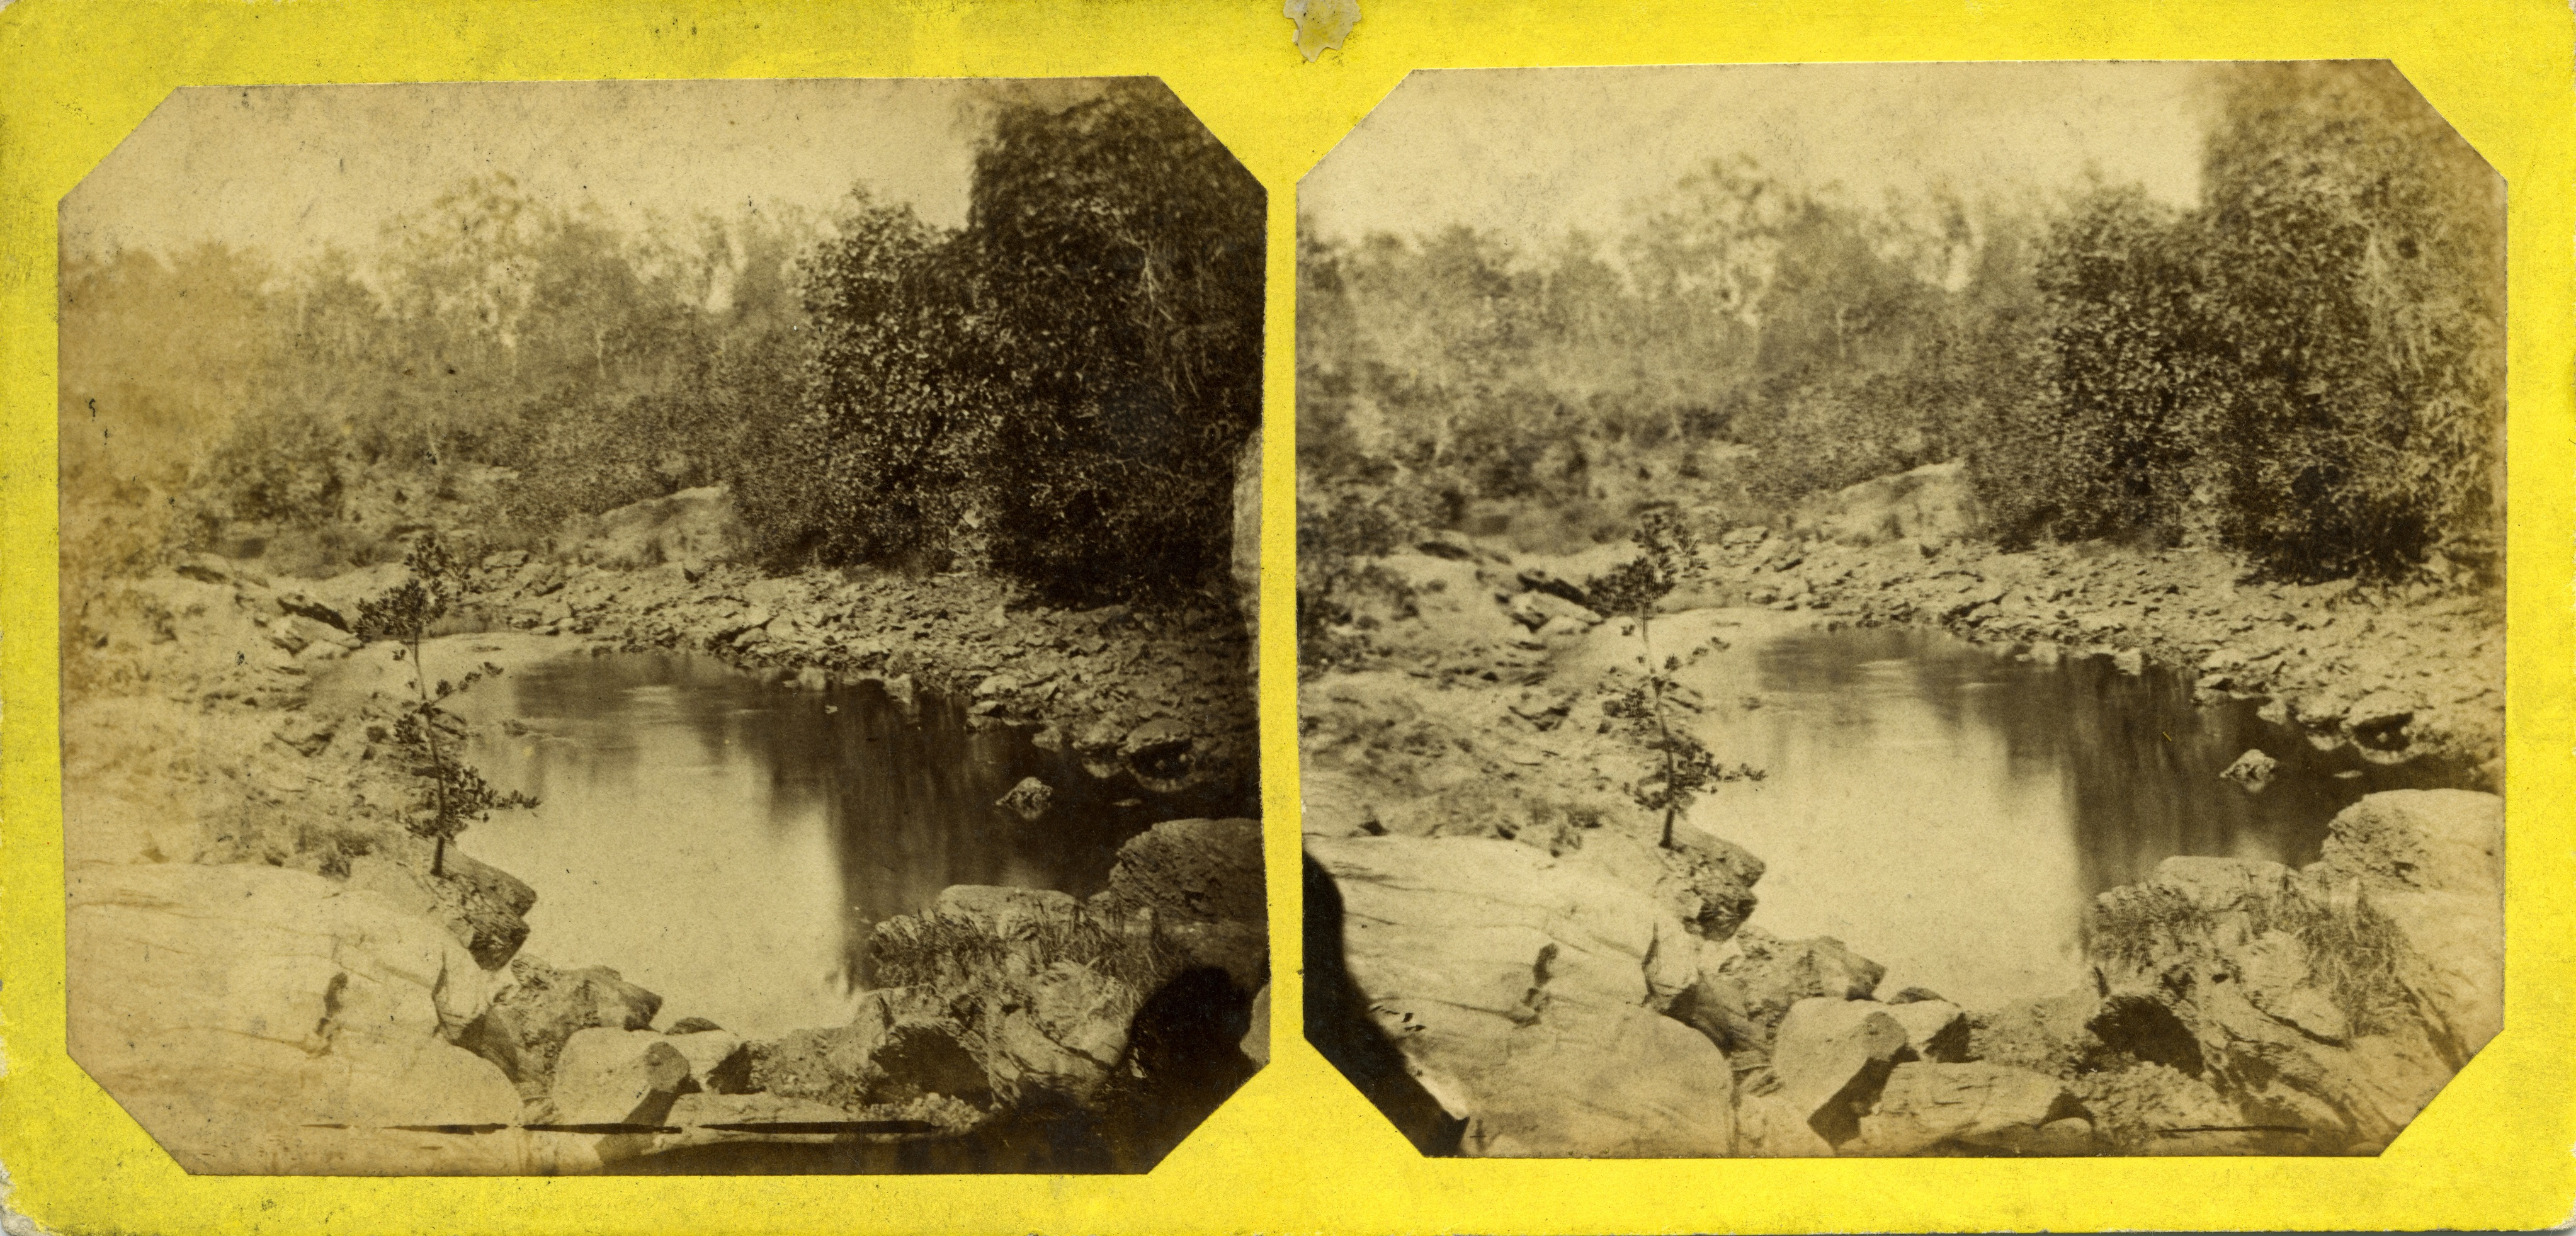 Stereoscopic image of Tumbling Waters, 1869